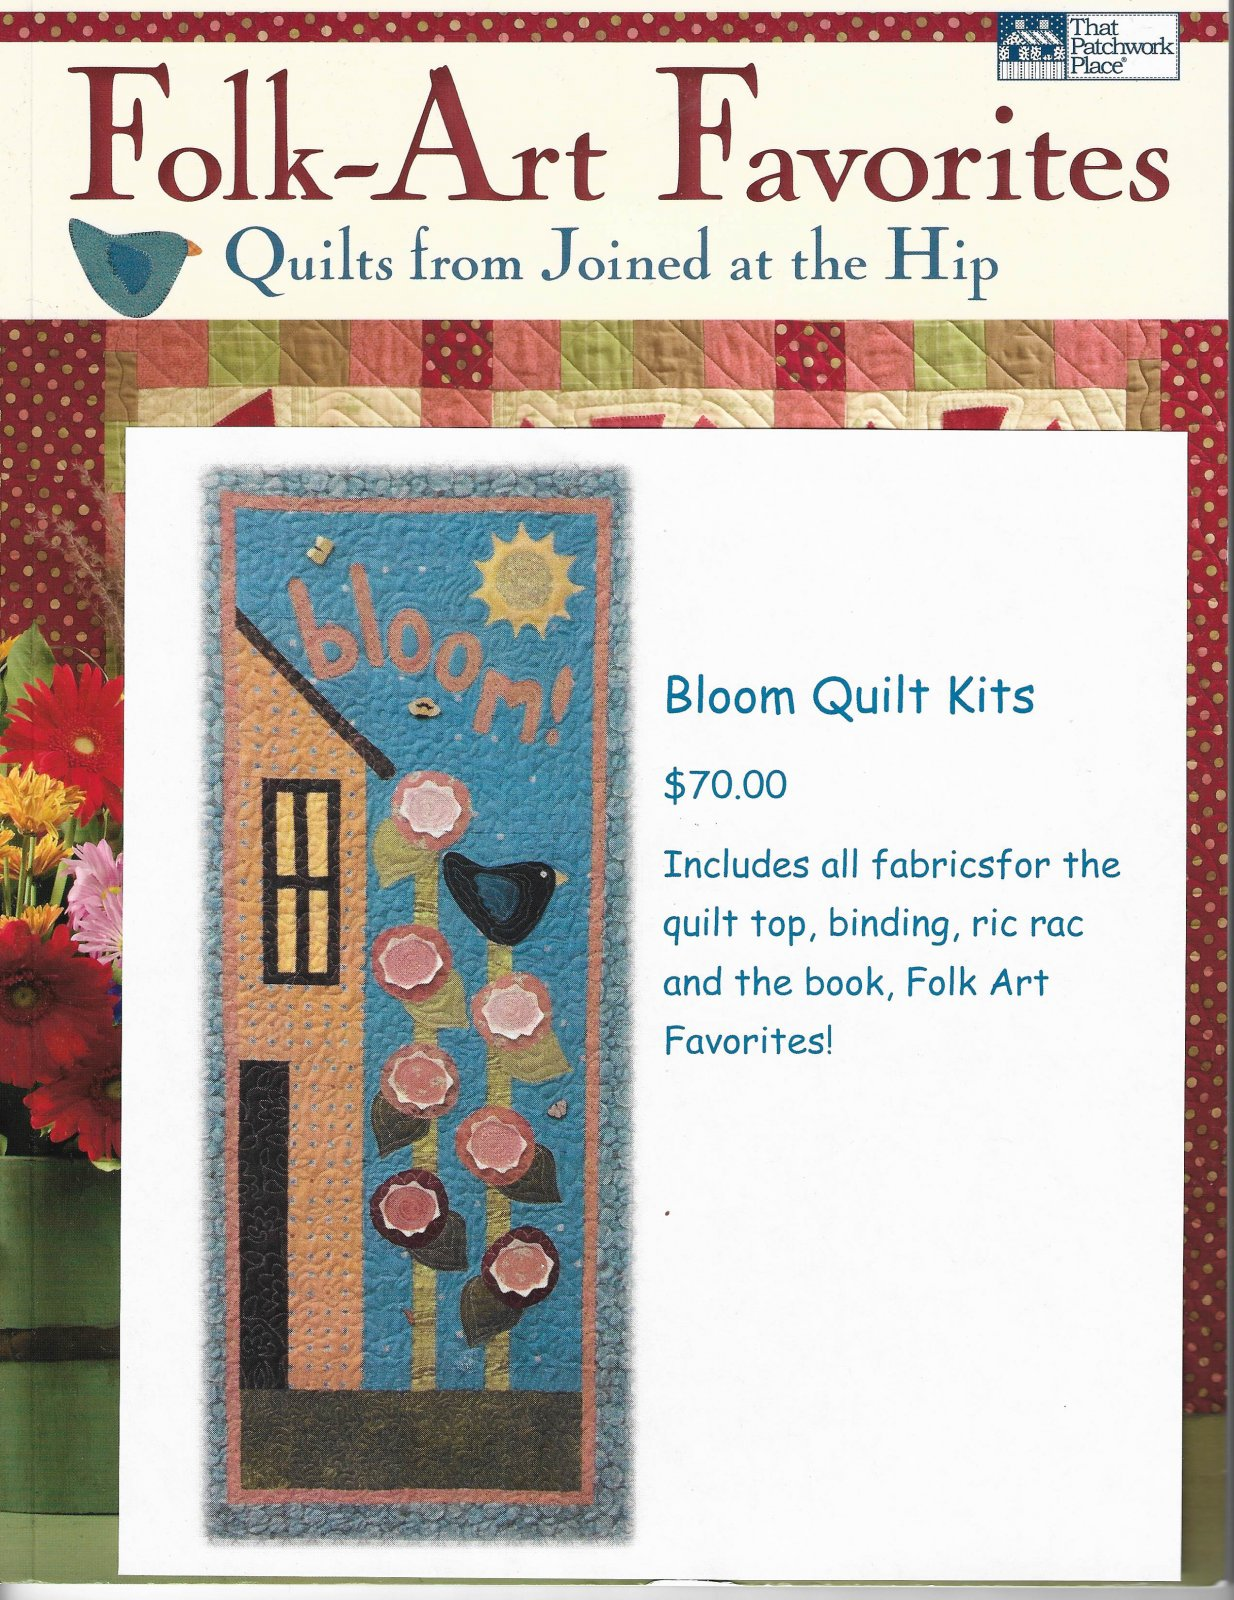 by more house quilt boat the img moda htm and kits sweetwater kit p shop for